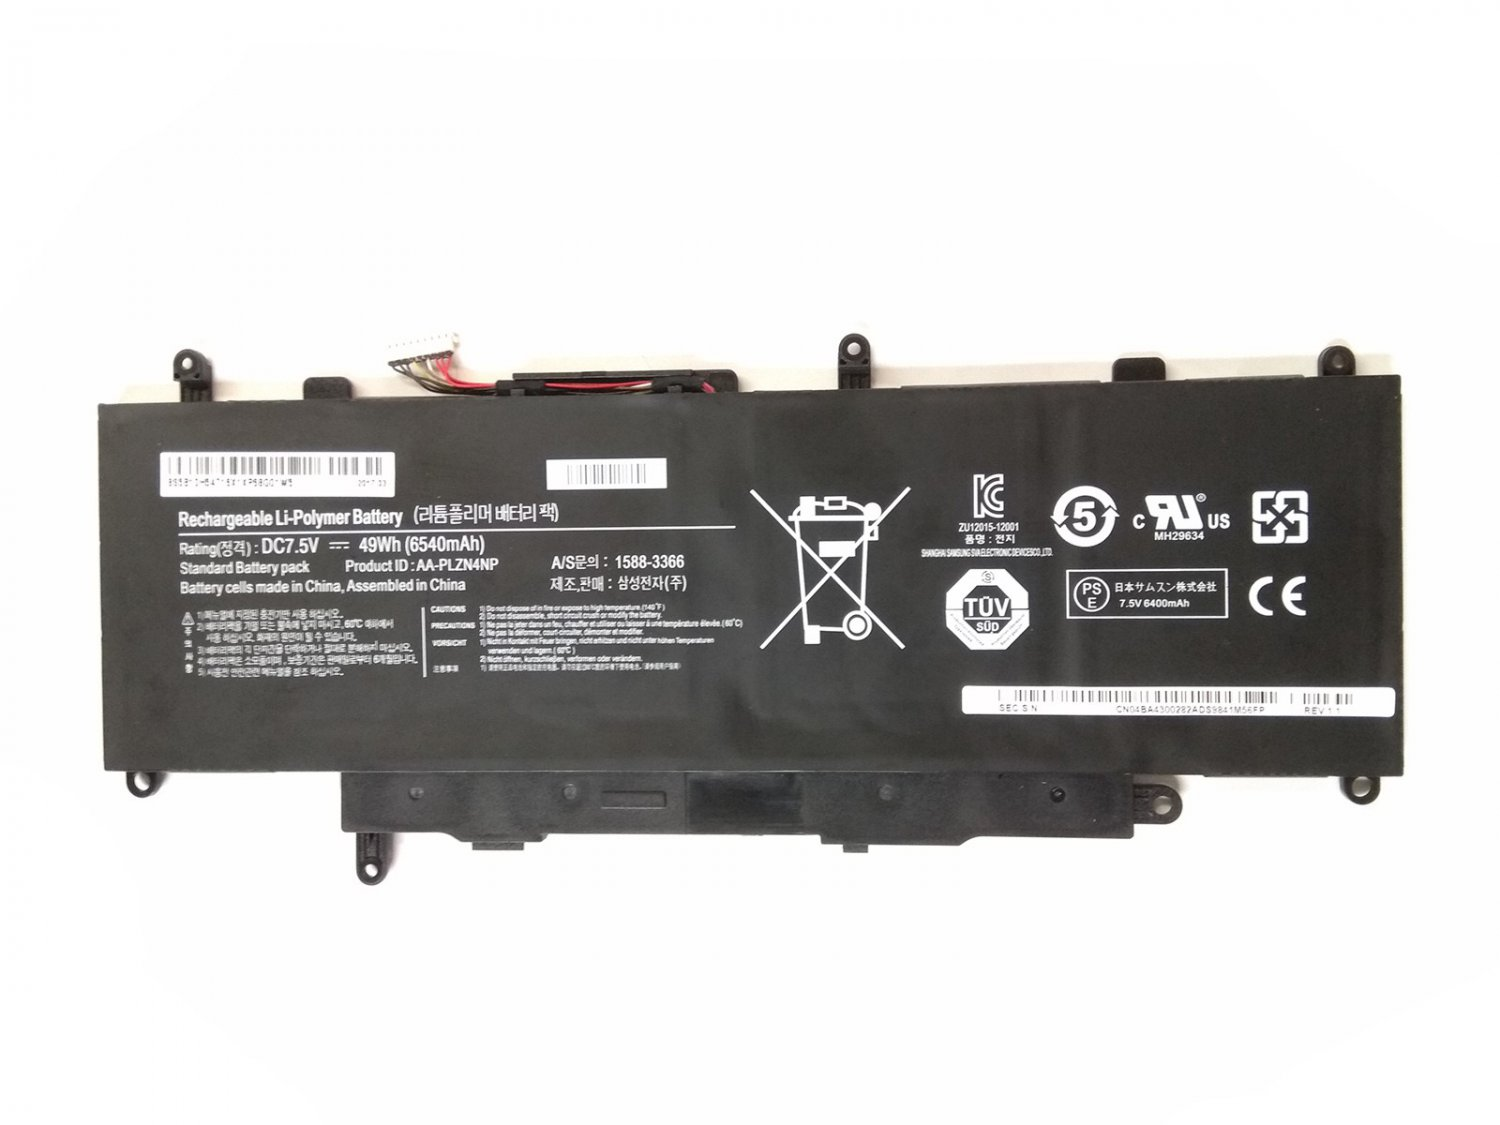 AA-PLZN4NP Battery For Samsung ATIV XE700T1C-A01FR XE700T1C-A01PL